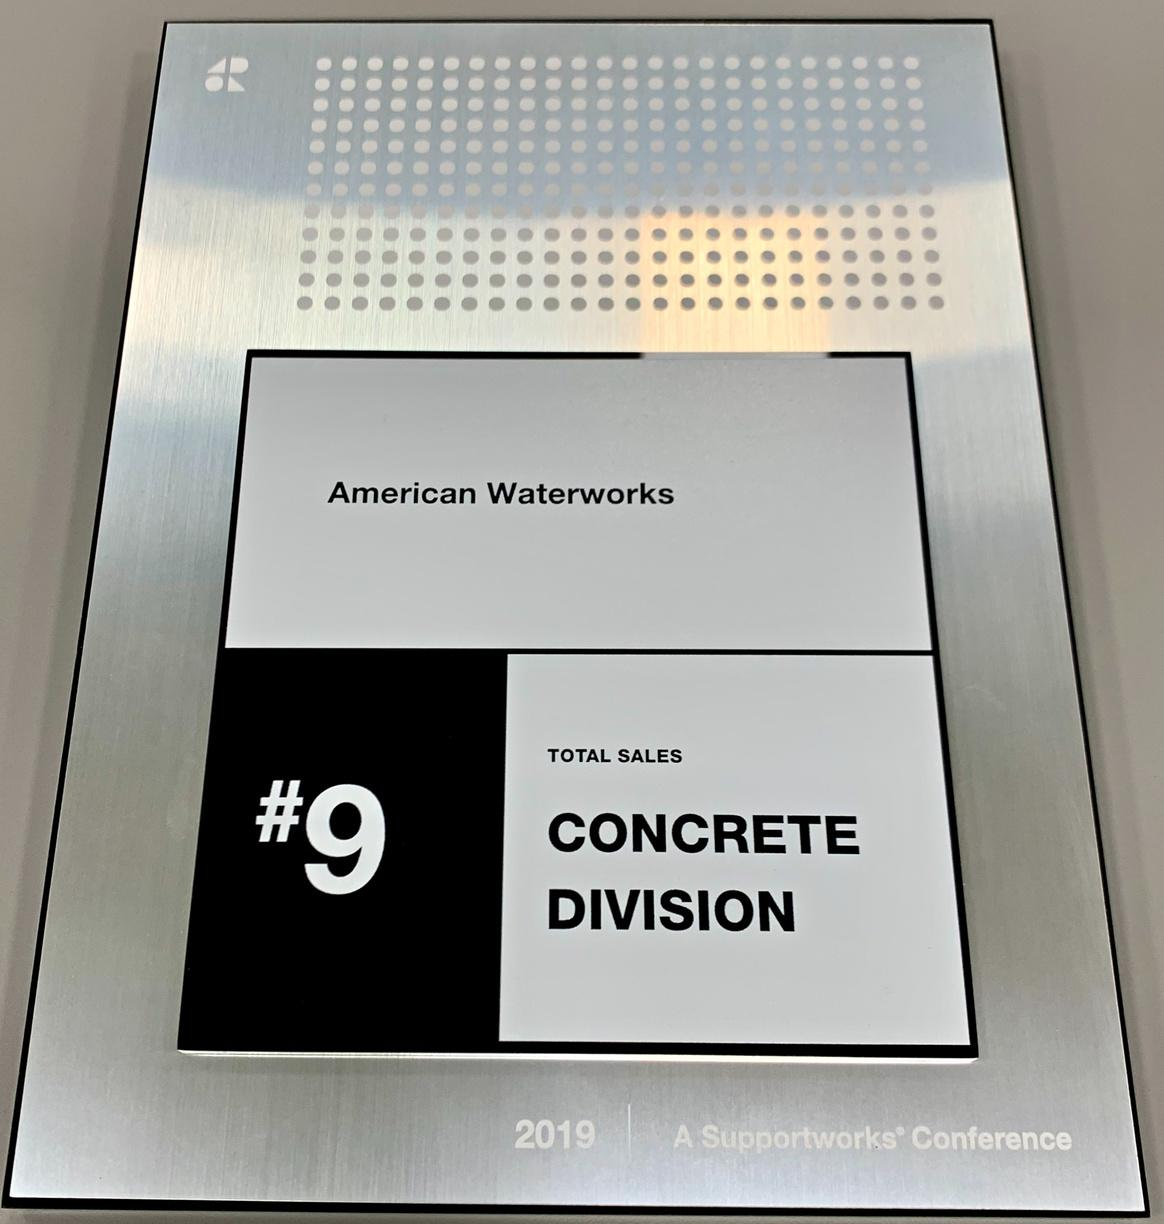 #9 in Concrete Division for 2019 Total Sales